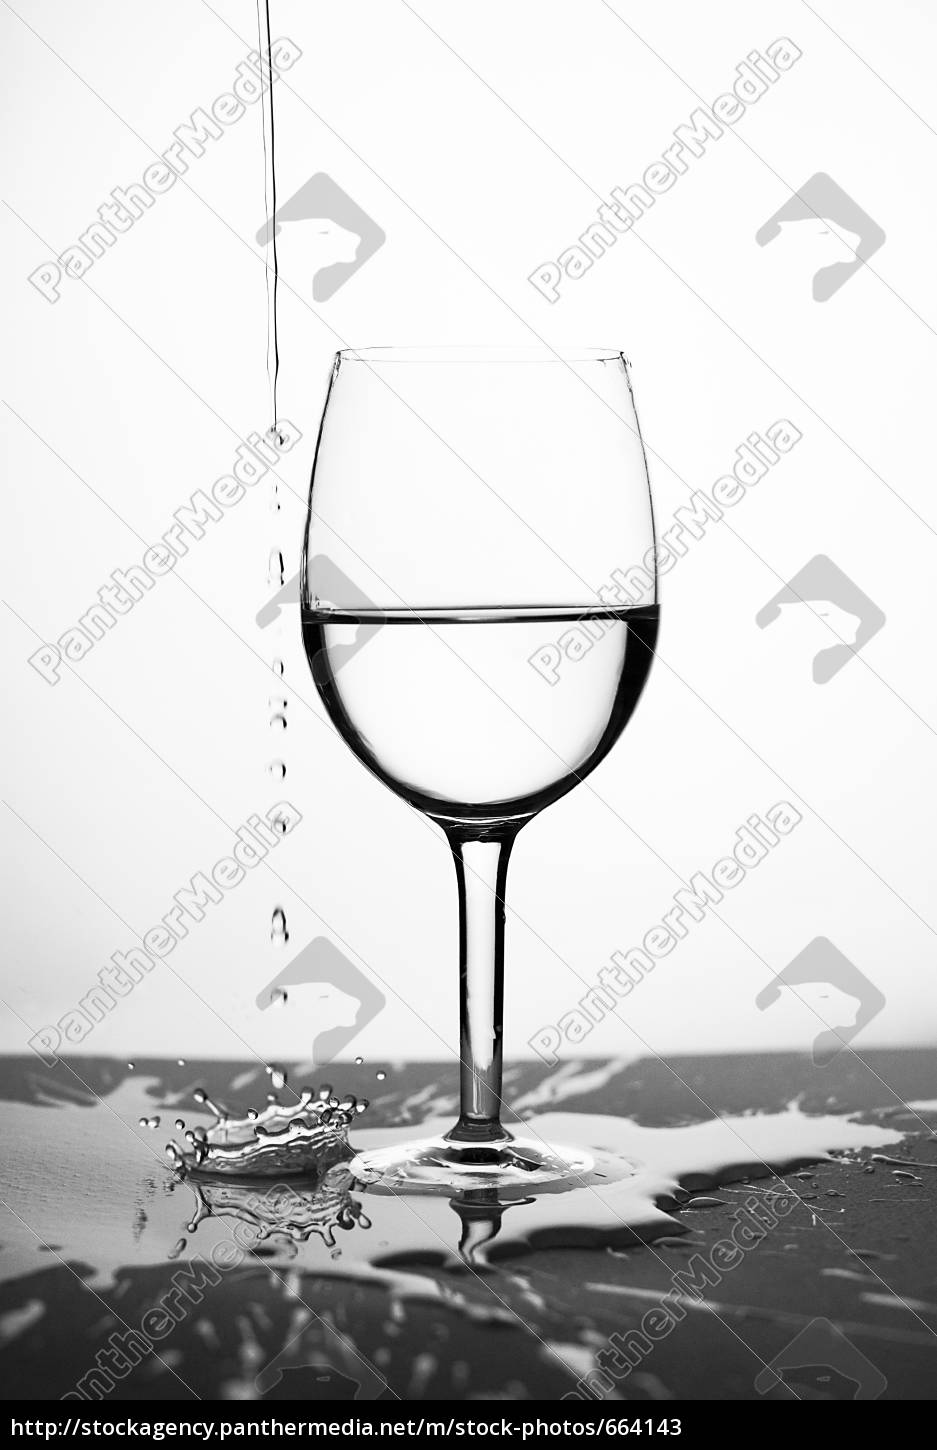 the, glass, over, ... - 664143